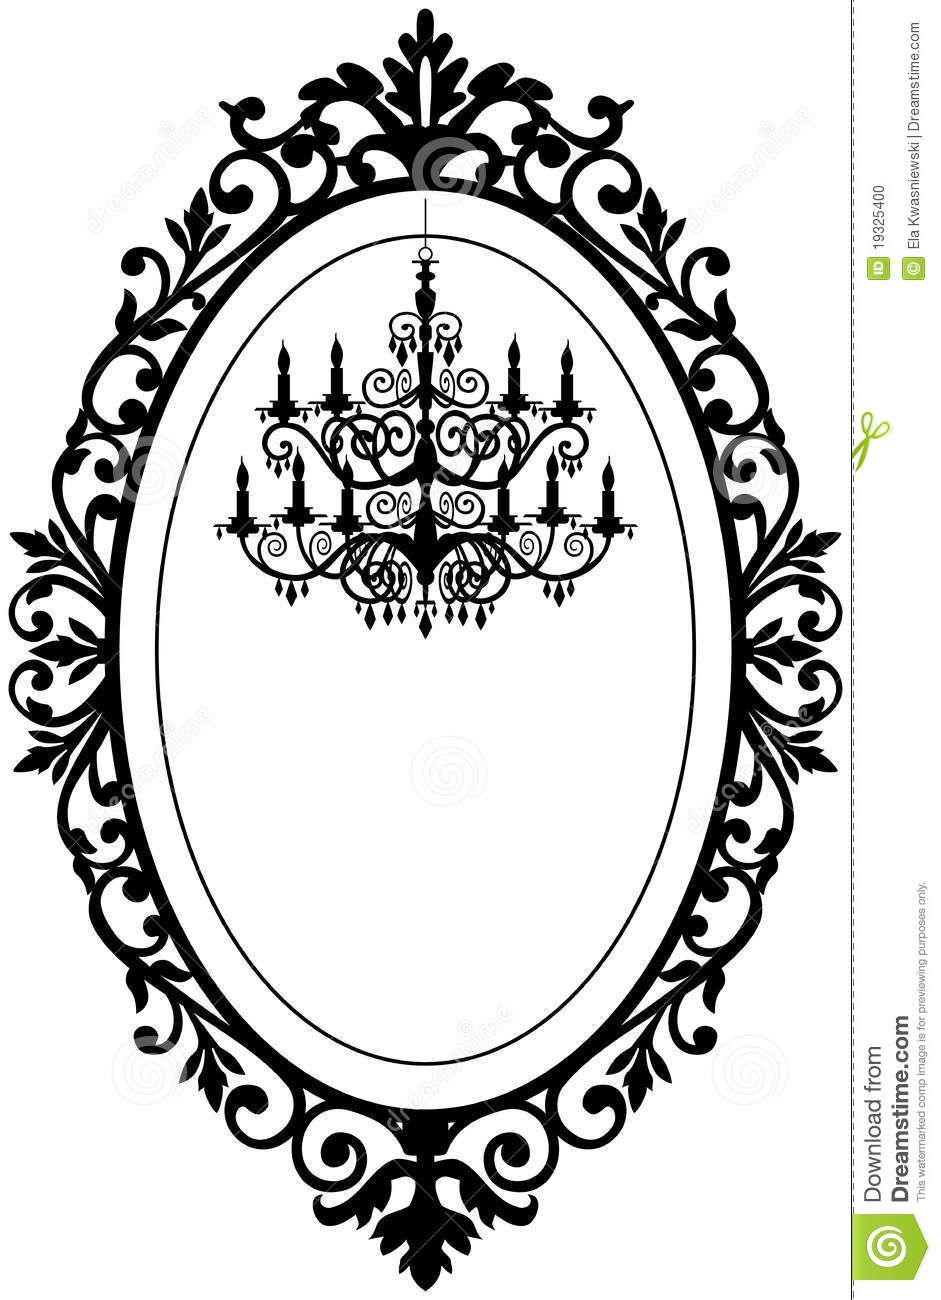 Antique20oval20frame20silhouette silhouette designs pinterest vintage antique picture frame with baroque chandelier black silhouette full scalable vector graphic change the colors as you like by ela kwasniewski arubaitofo Gallery